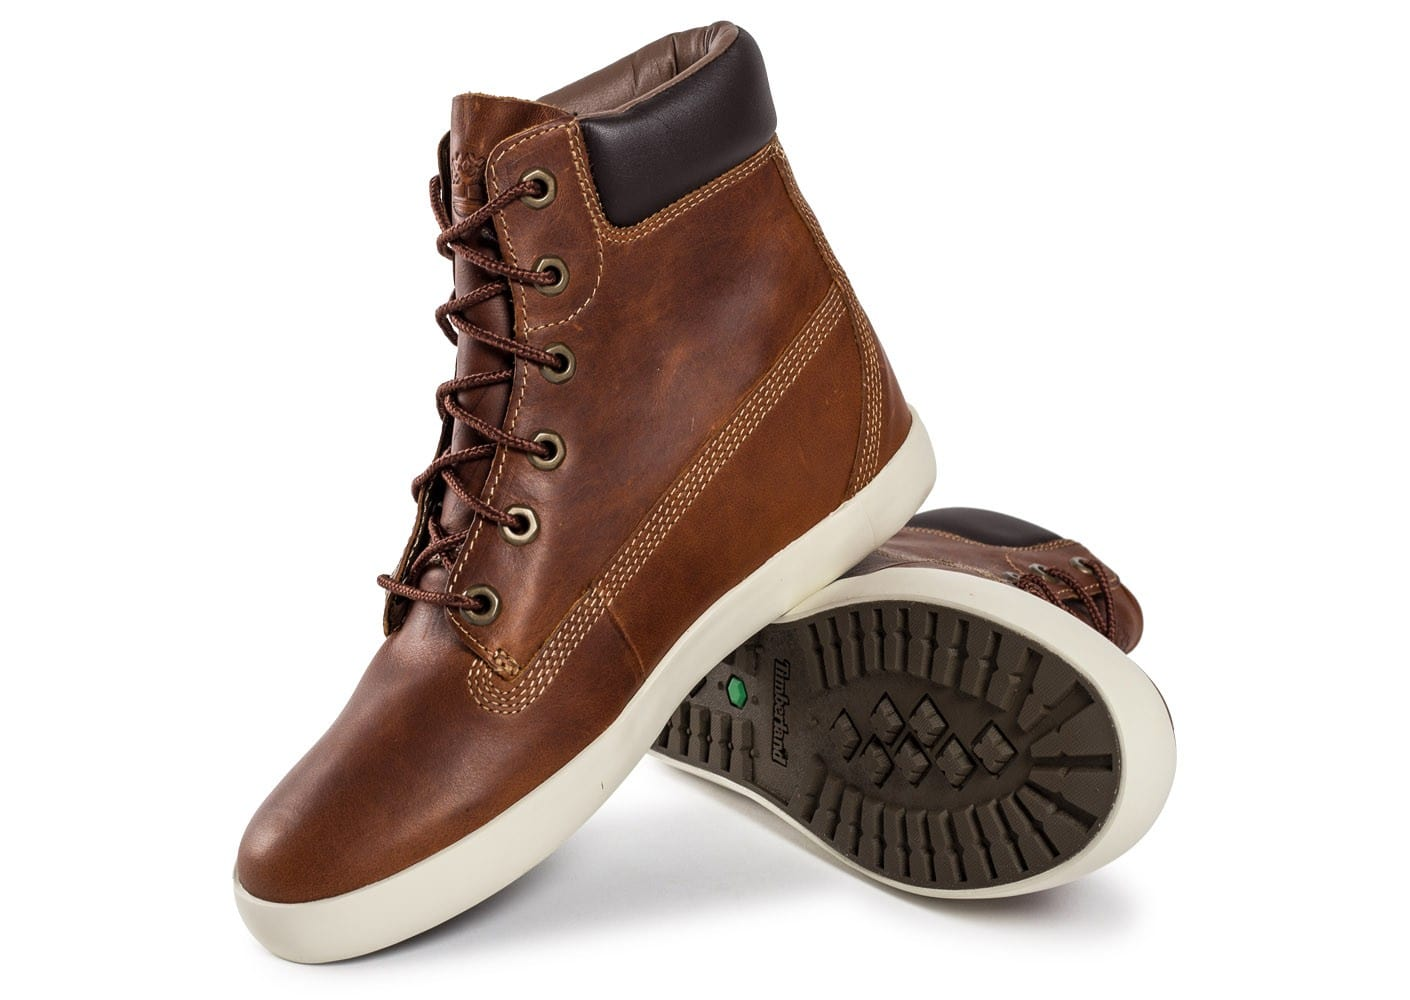 Timberland flannery cuir marron chaussures chaussures chausport - Cuire marron au four ...